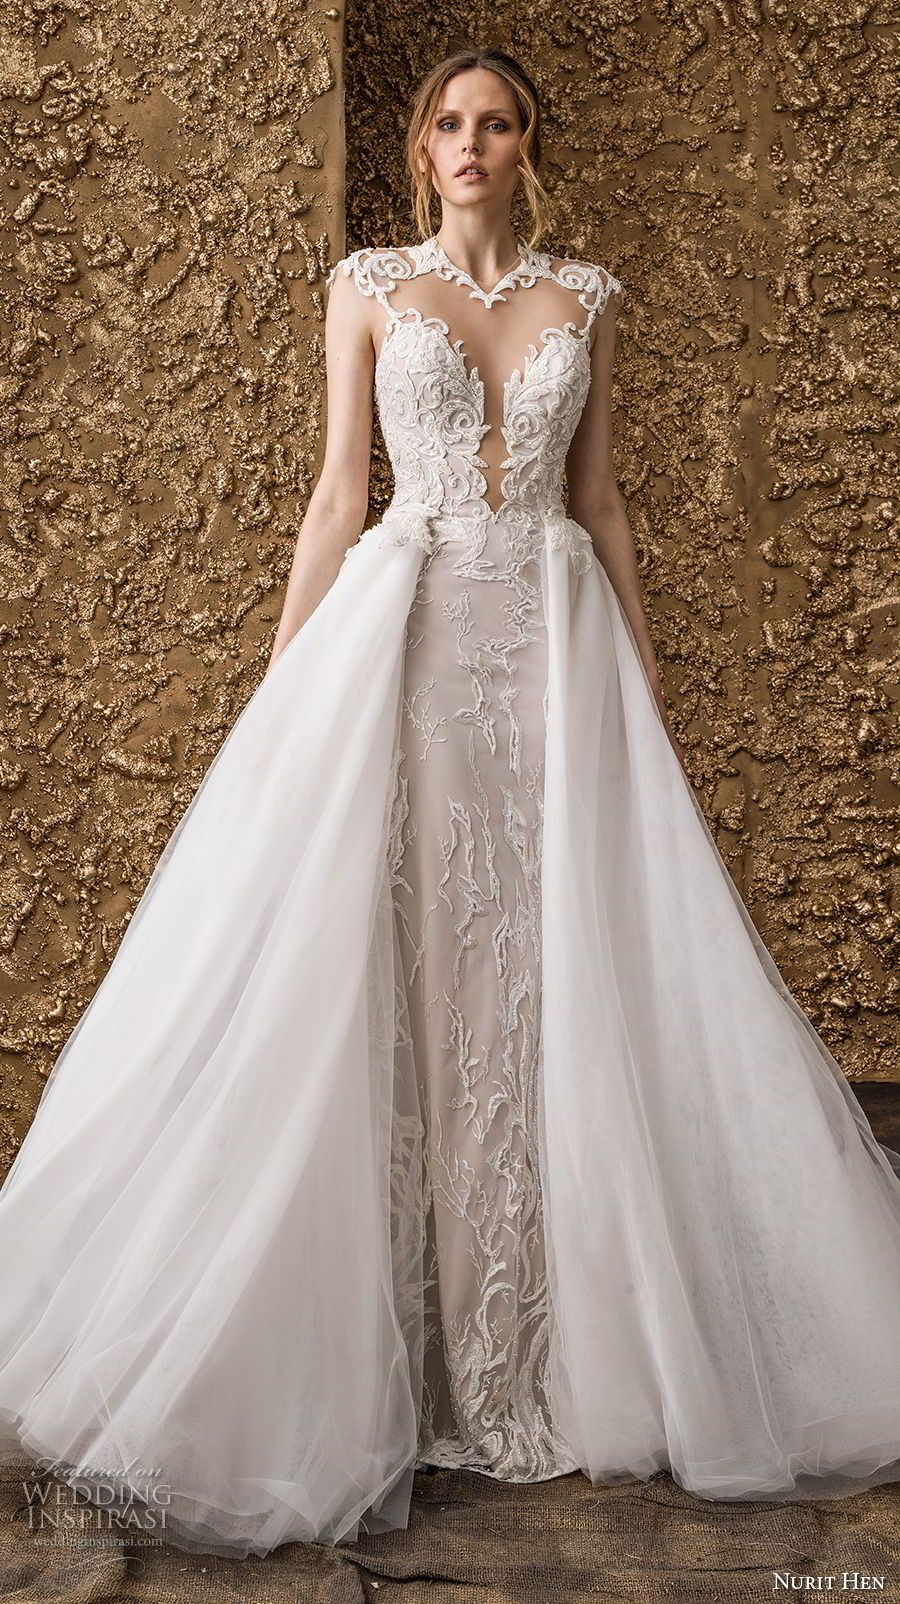 Wedding dresses springfield mo  Nurit Hen  Wedding Dresses u ucGolden Touchud Bridal Collection